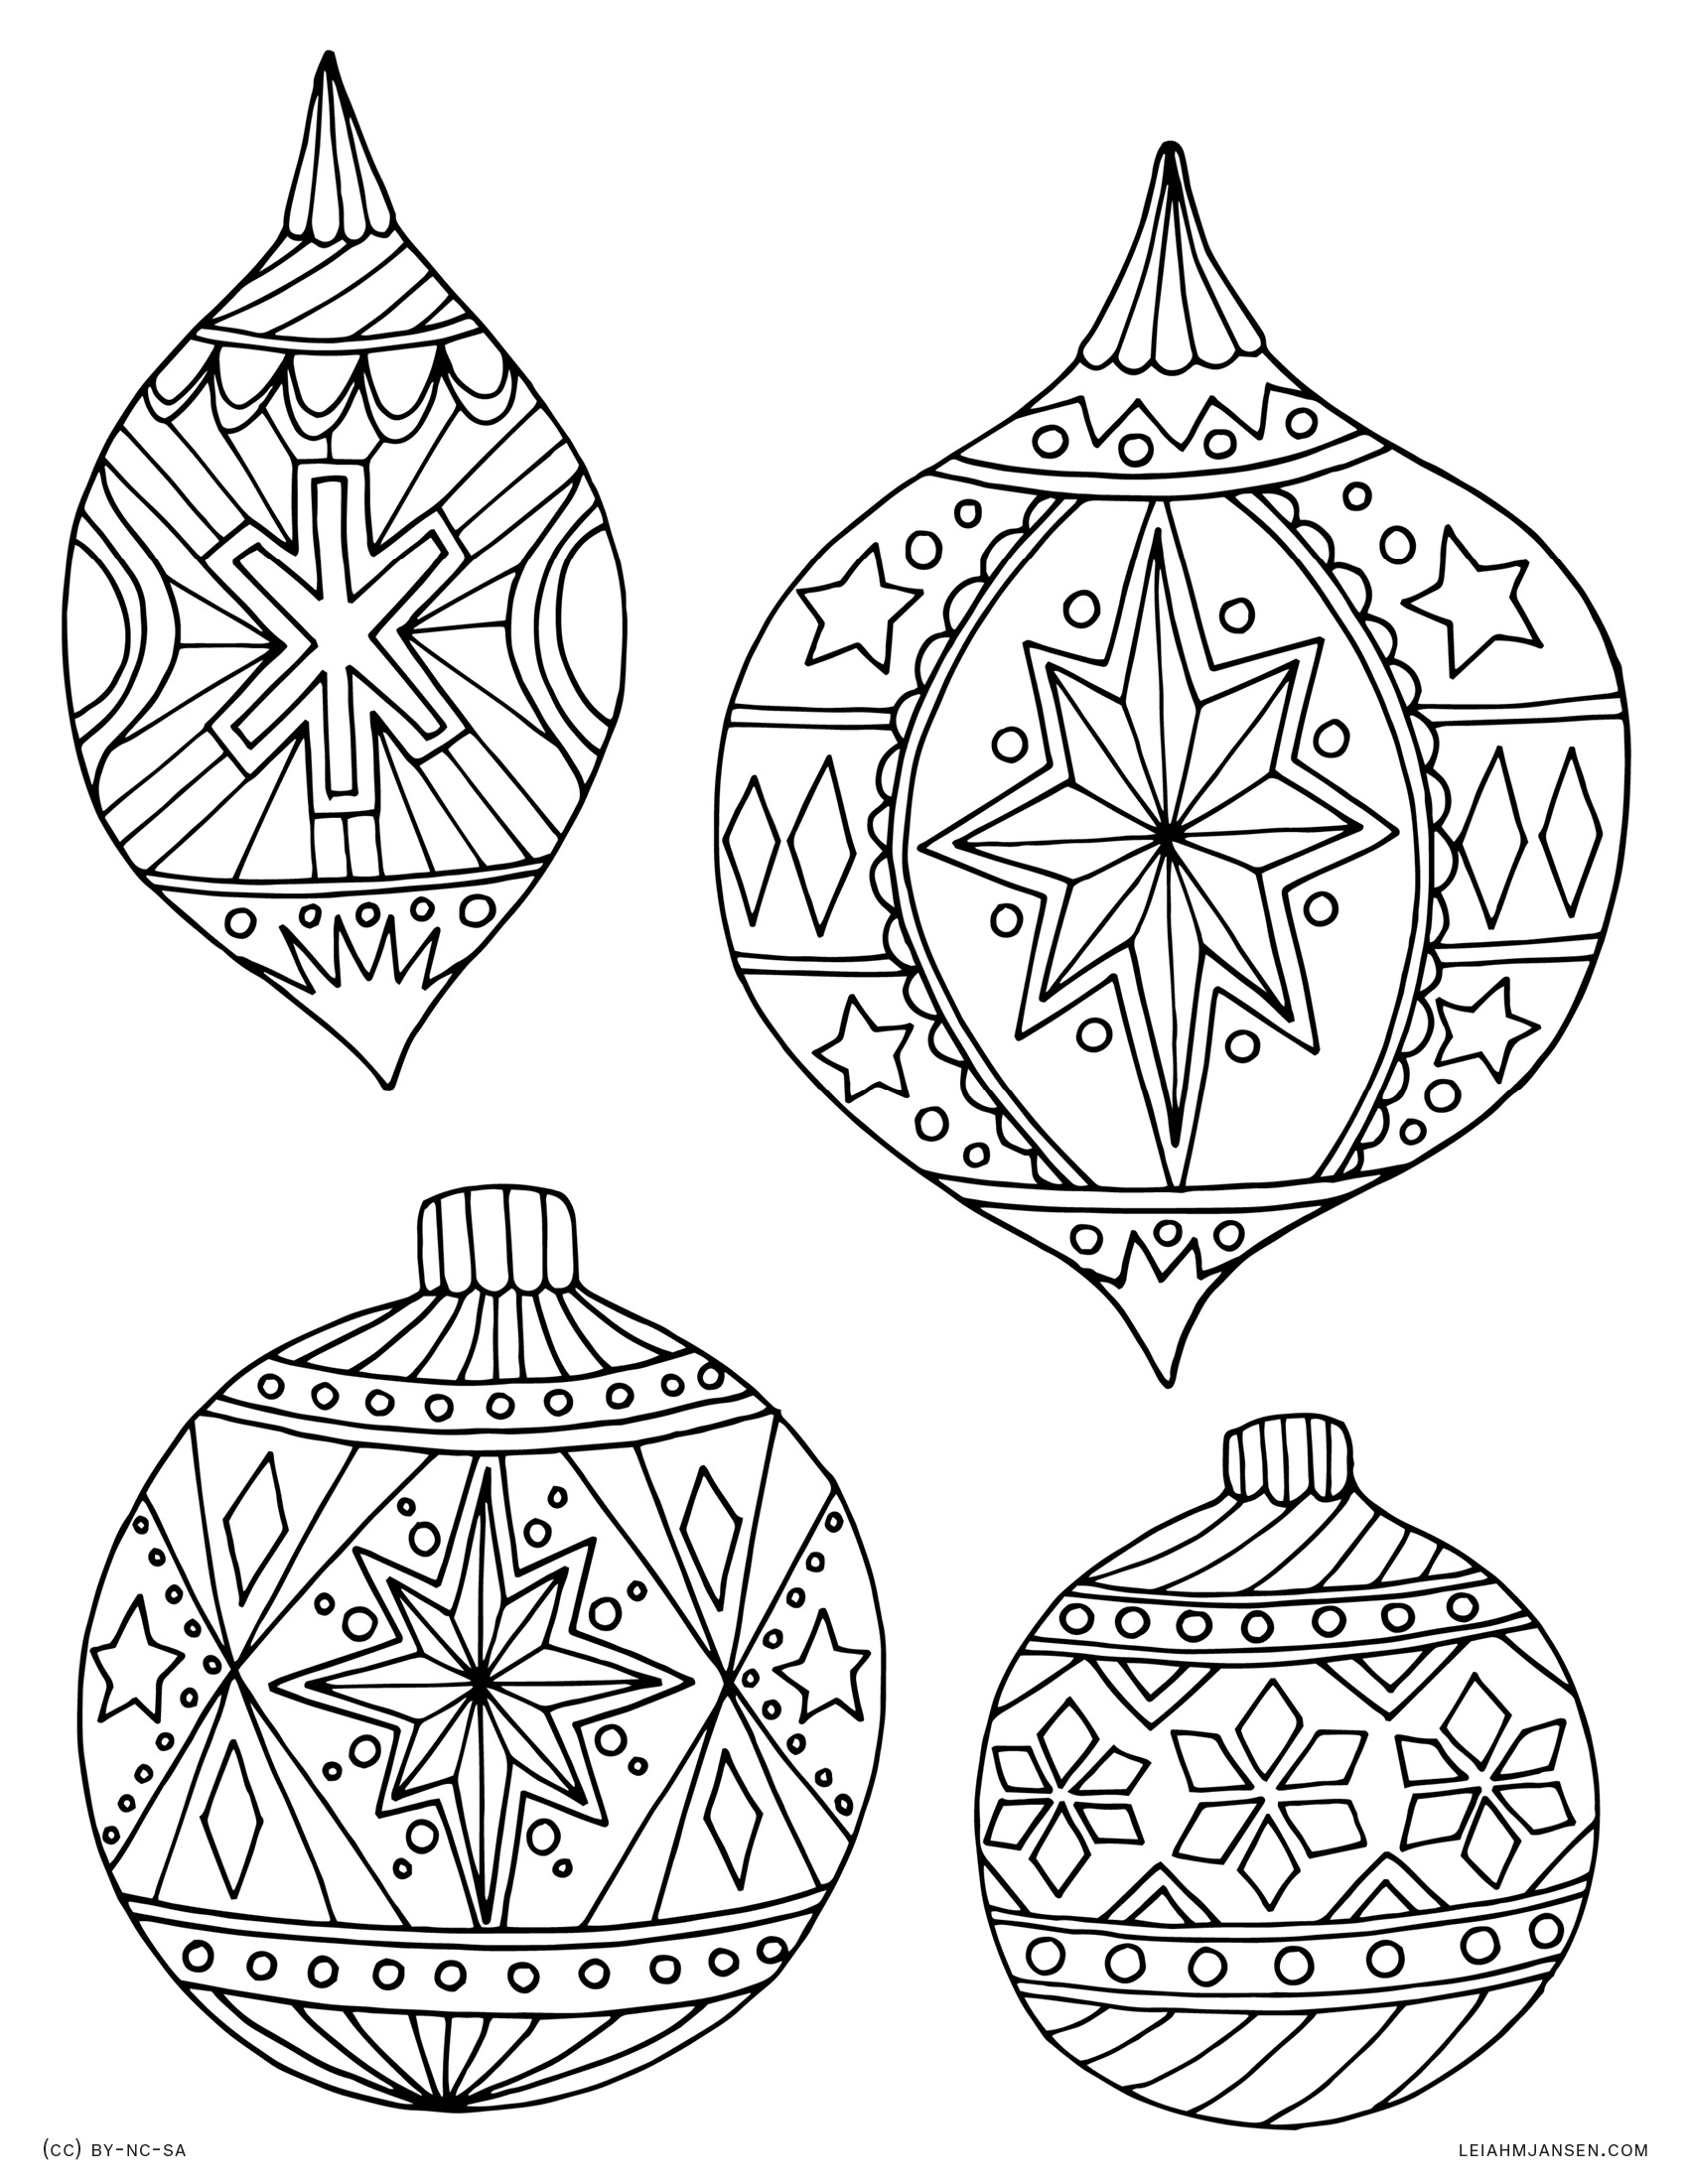 image about Free Printable Holiday Coloring Pages titled Vacation Coloring Internet pages